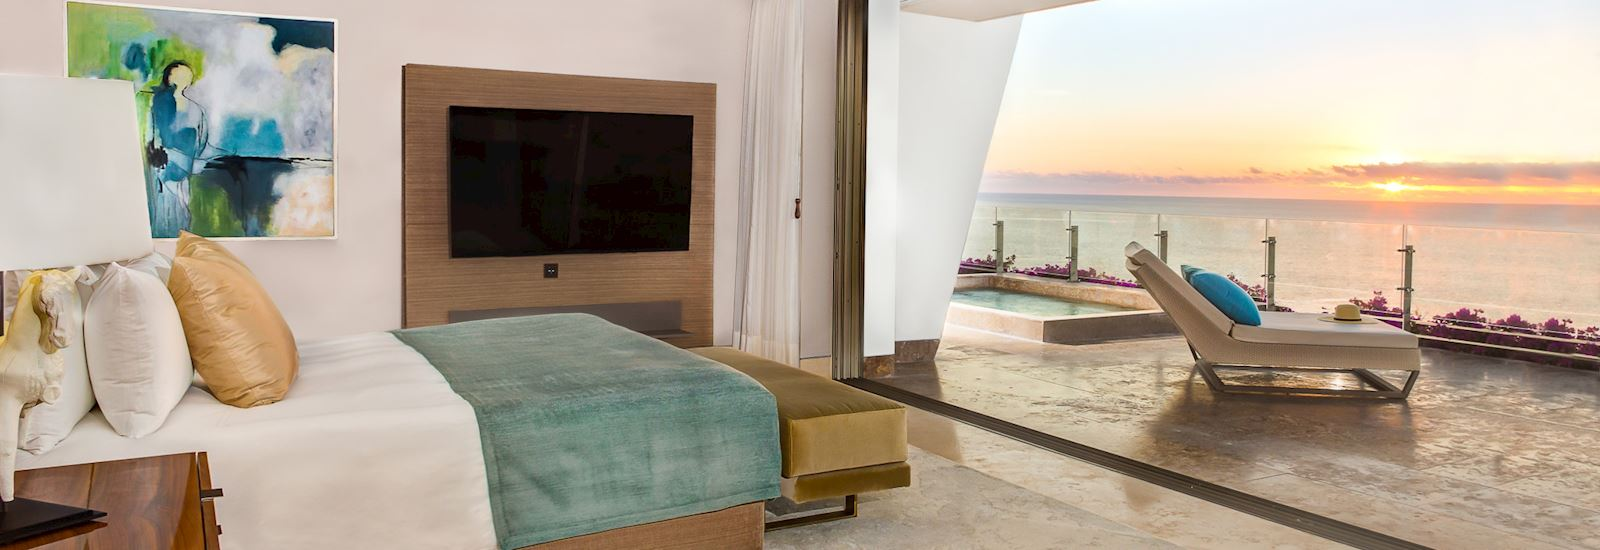 Presidential Suite Ocean Front View in Grand Velas Los Cabos